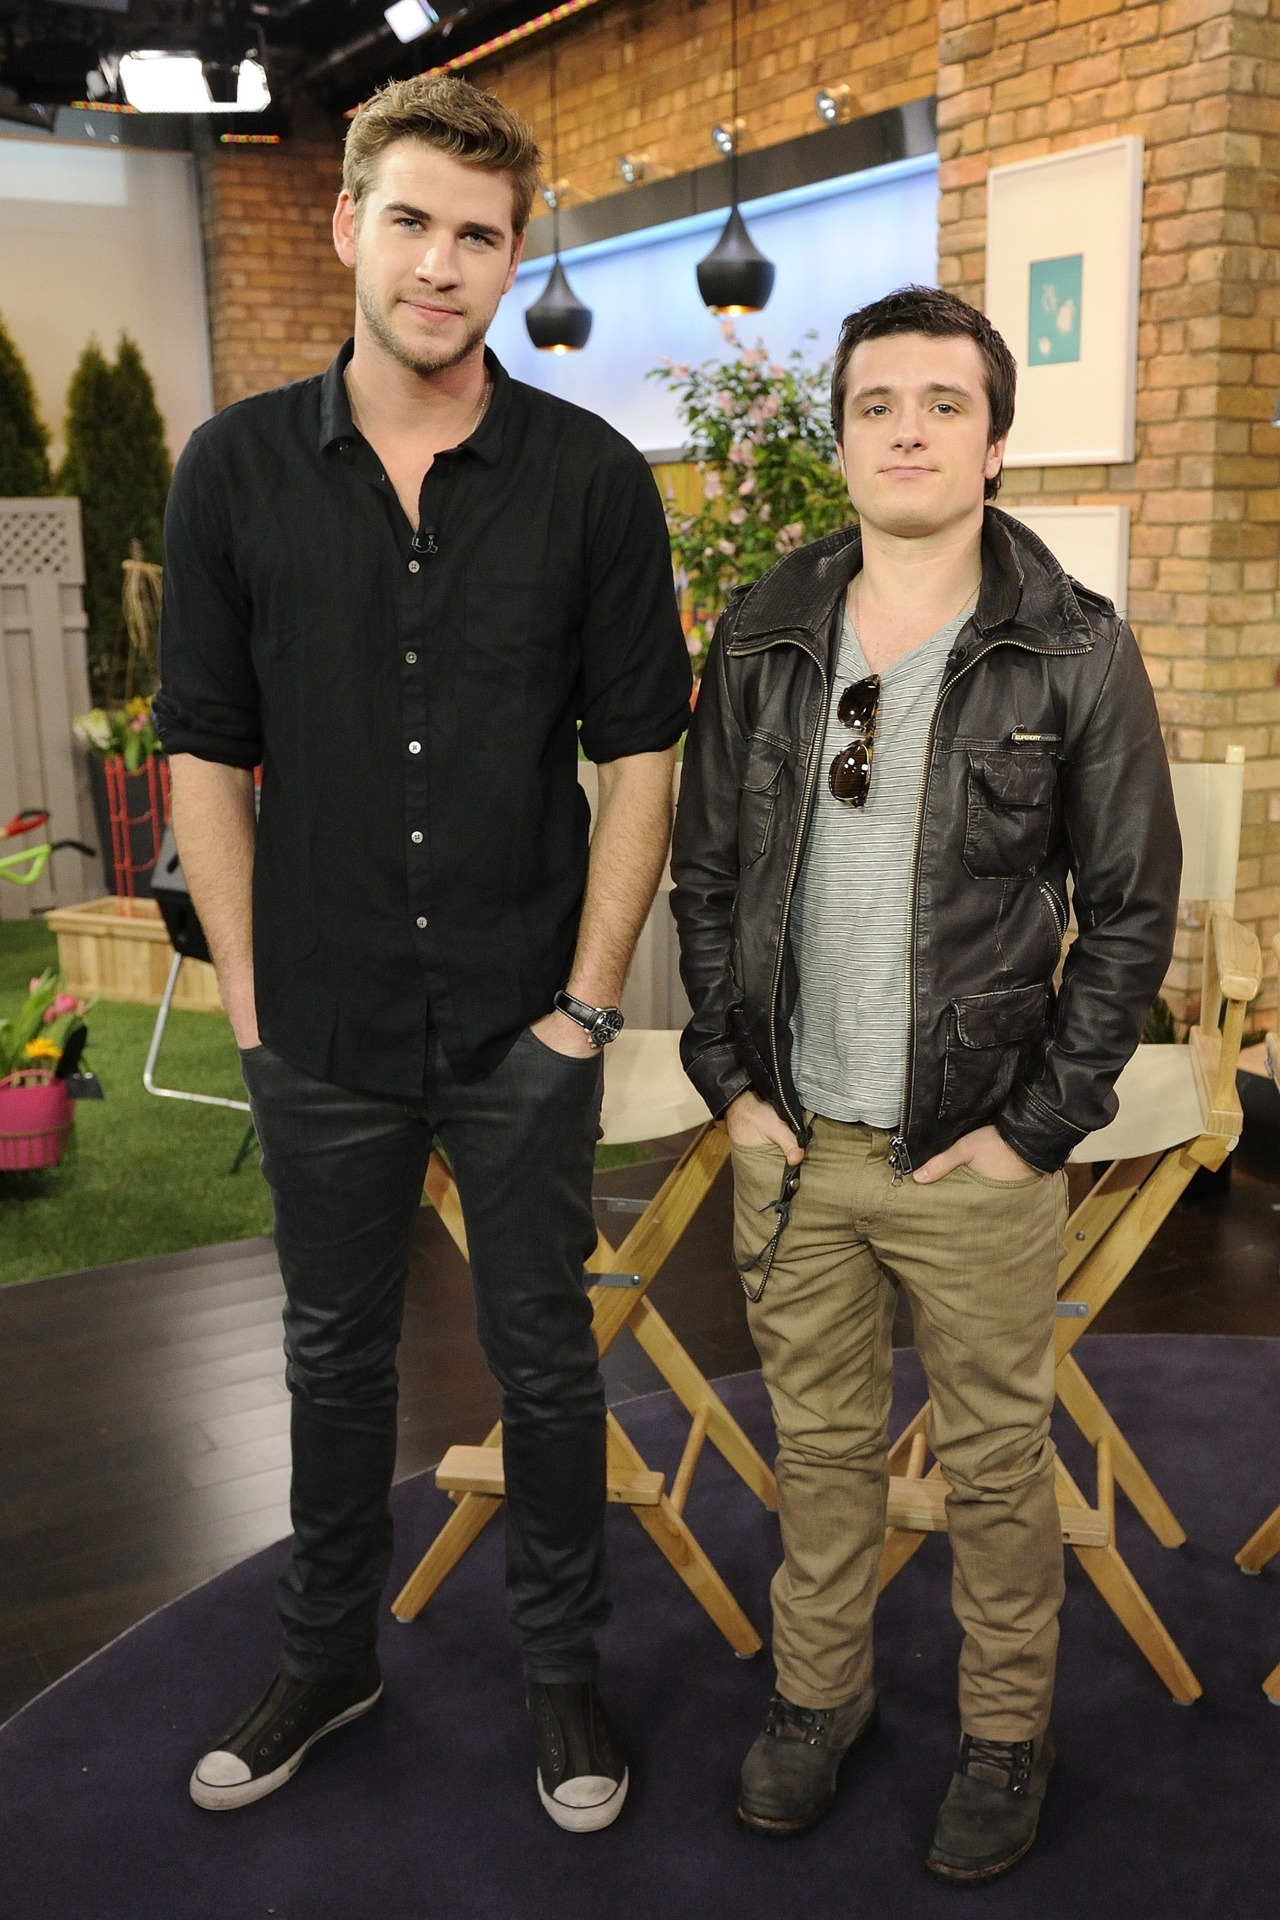 Liam Hemsworth & Josh Hutcherson, March 19th 2012 PICK HIM UP & KISS HIM!